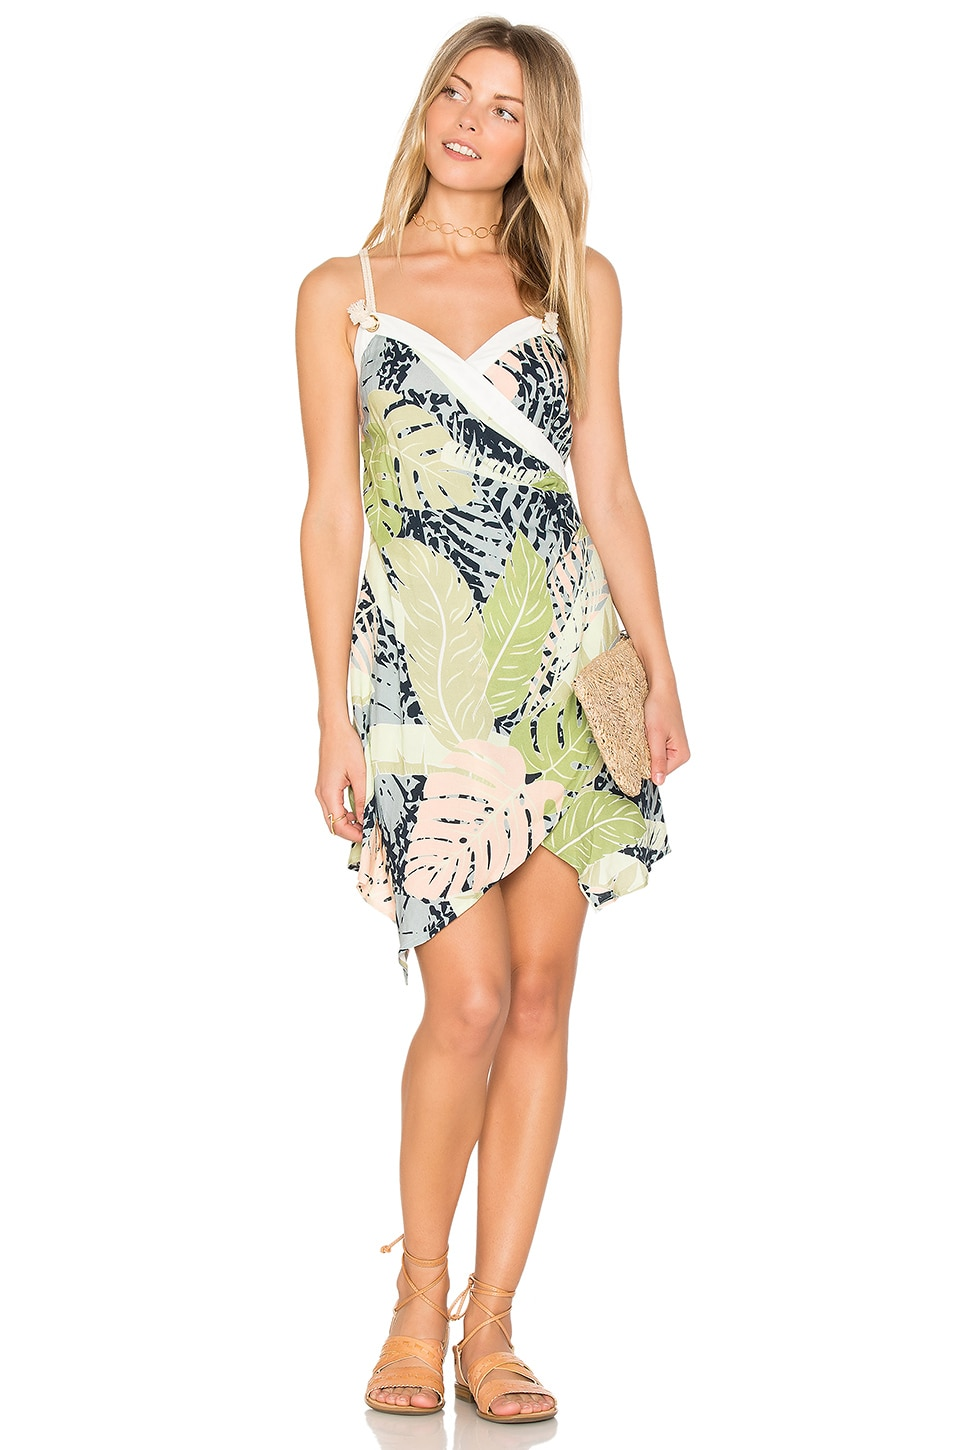 Aloha Cross Over Dress by Minkpink